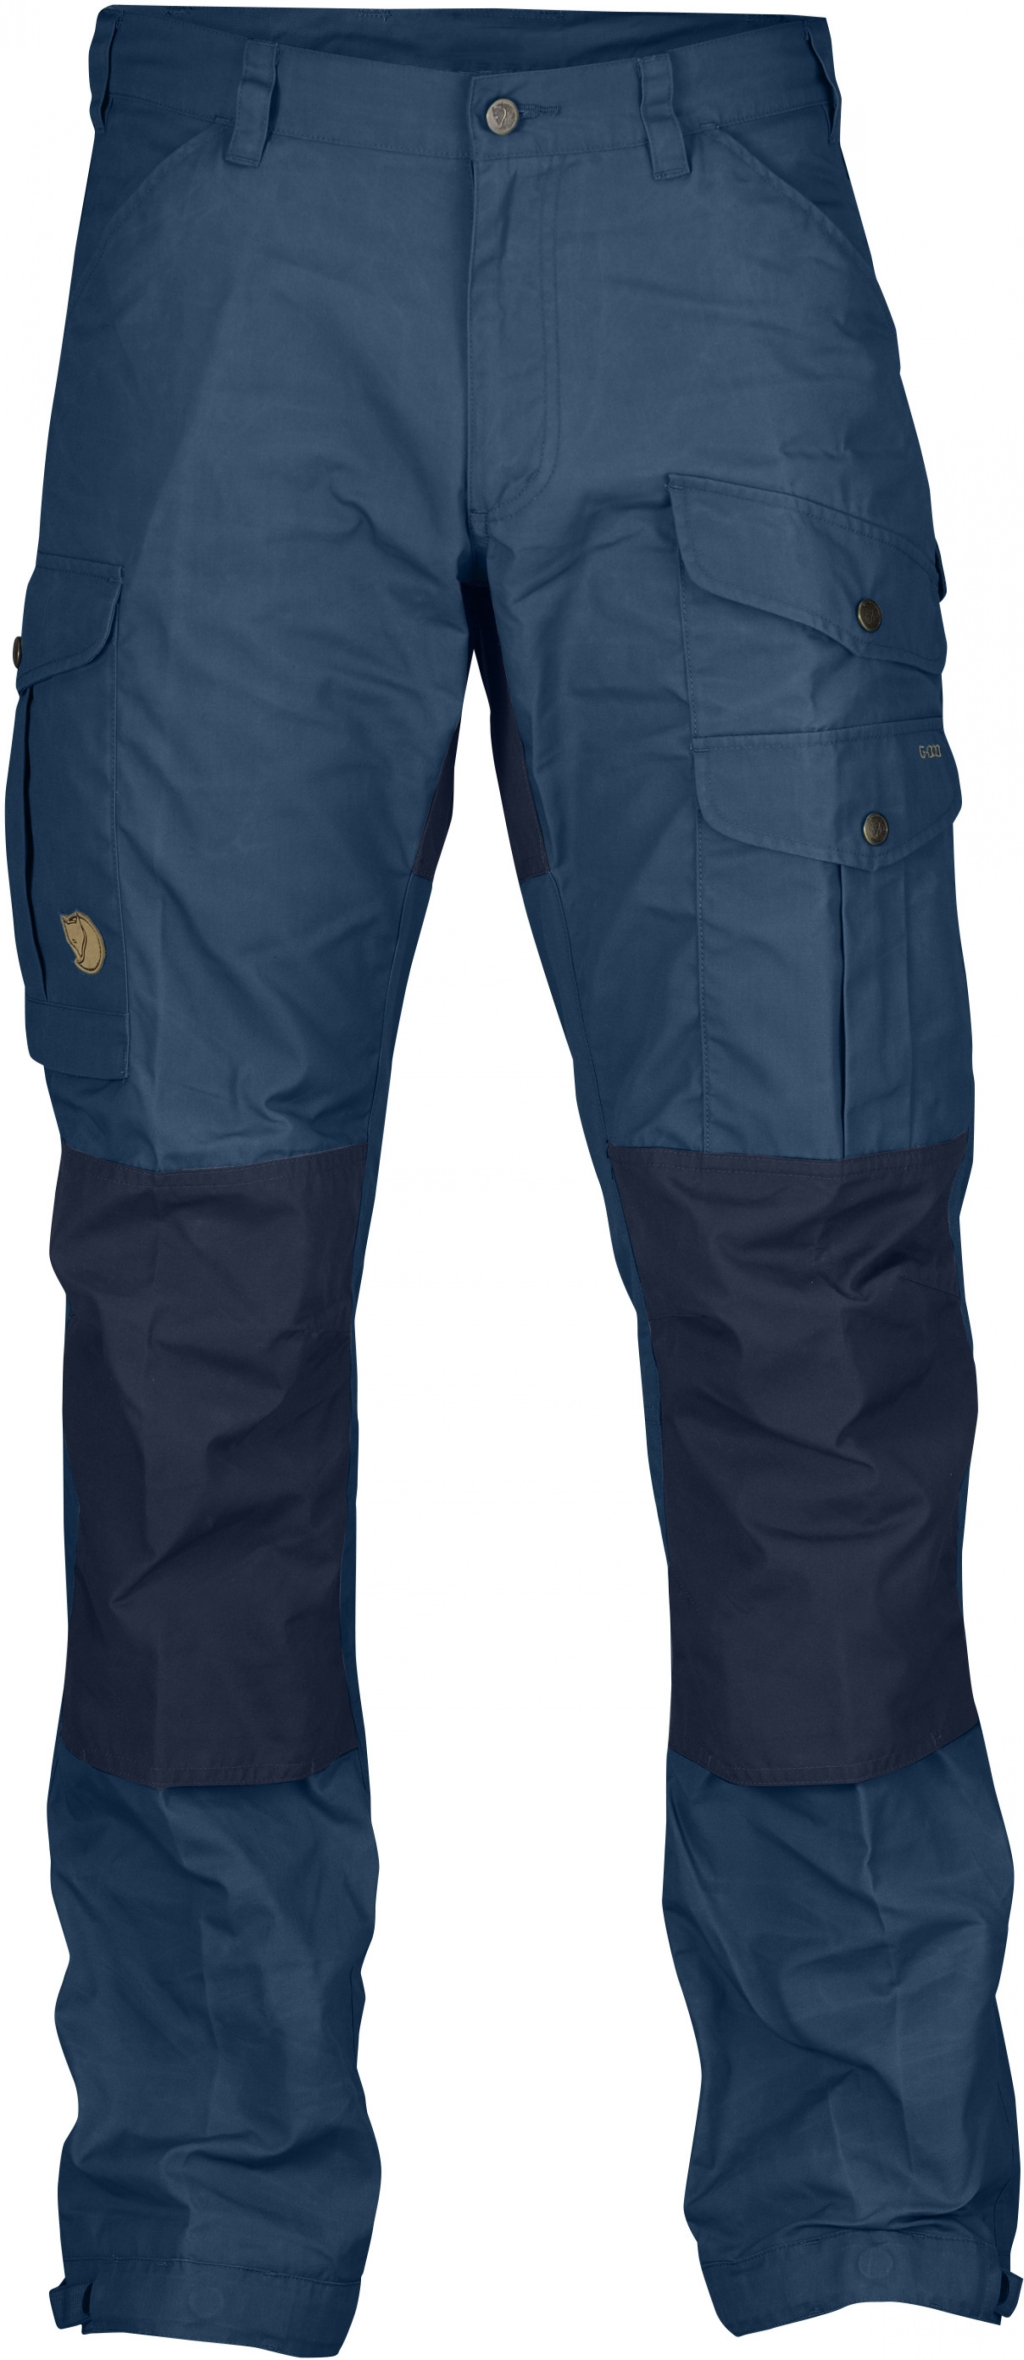 FjallRaven Vidda Pro Trousers Regular Uncle Blue-30